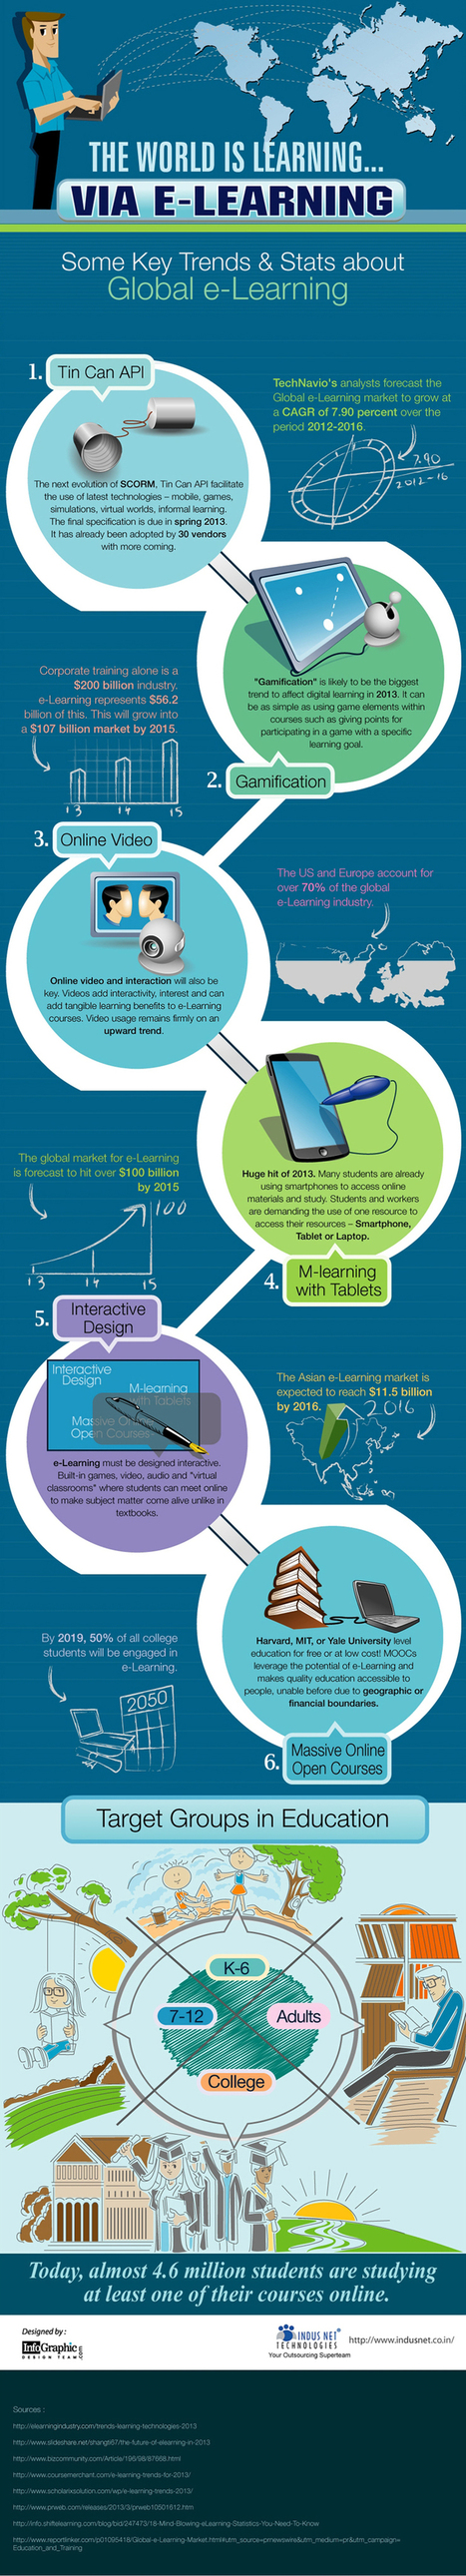 Global e-Learning Trends | EdTech, E-Learning | Scoop.it